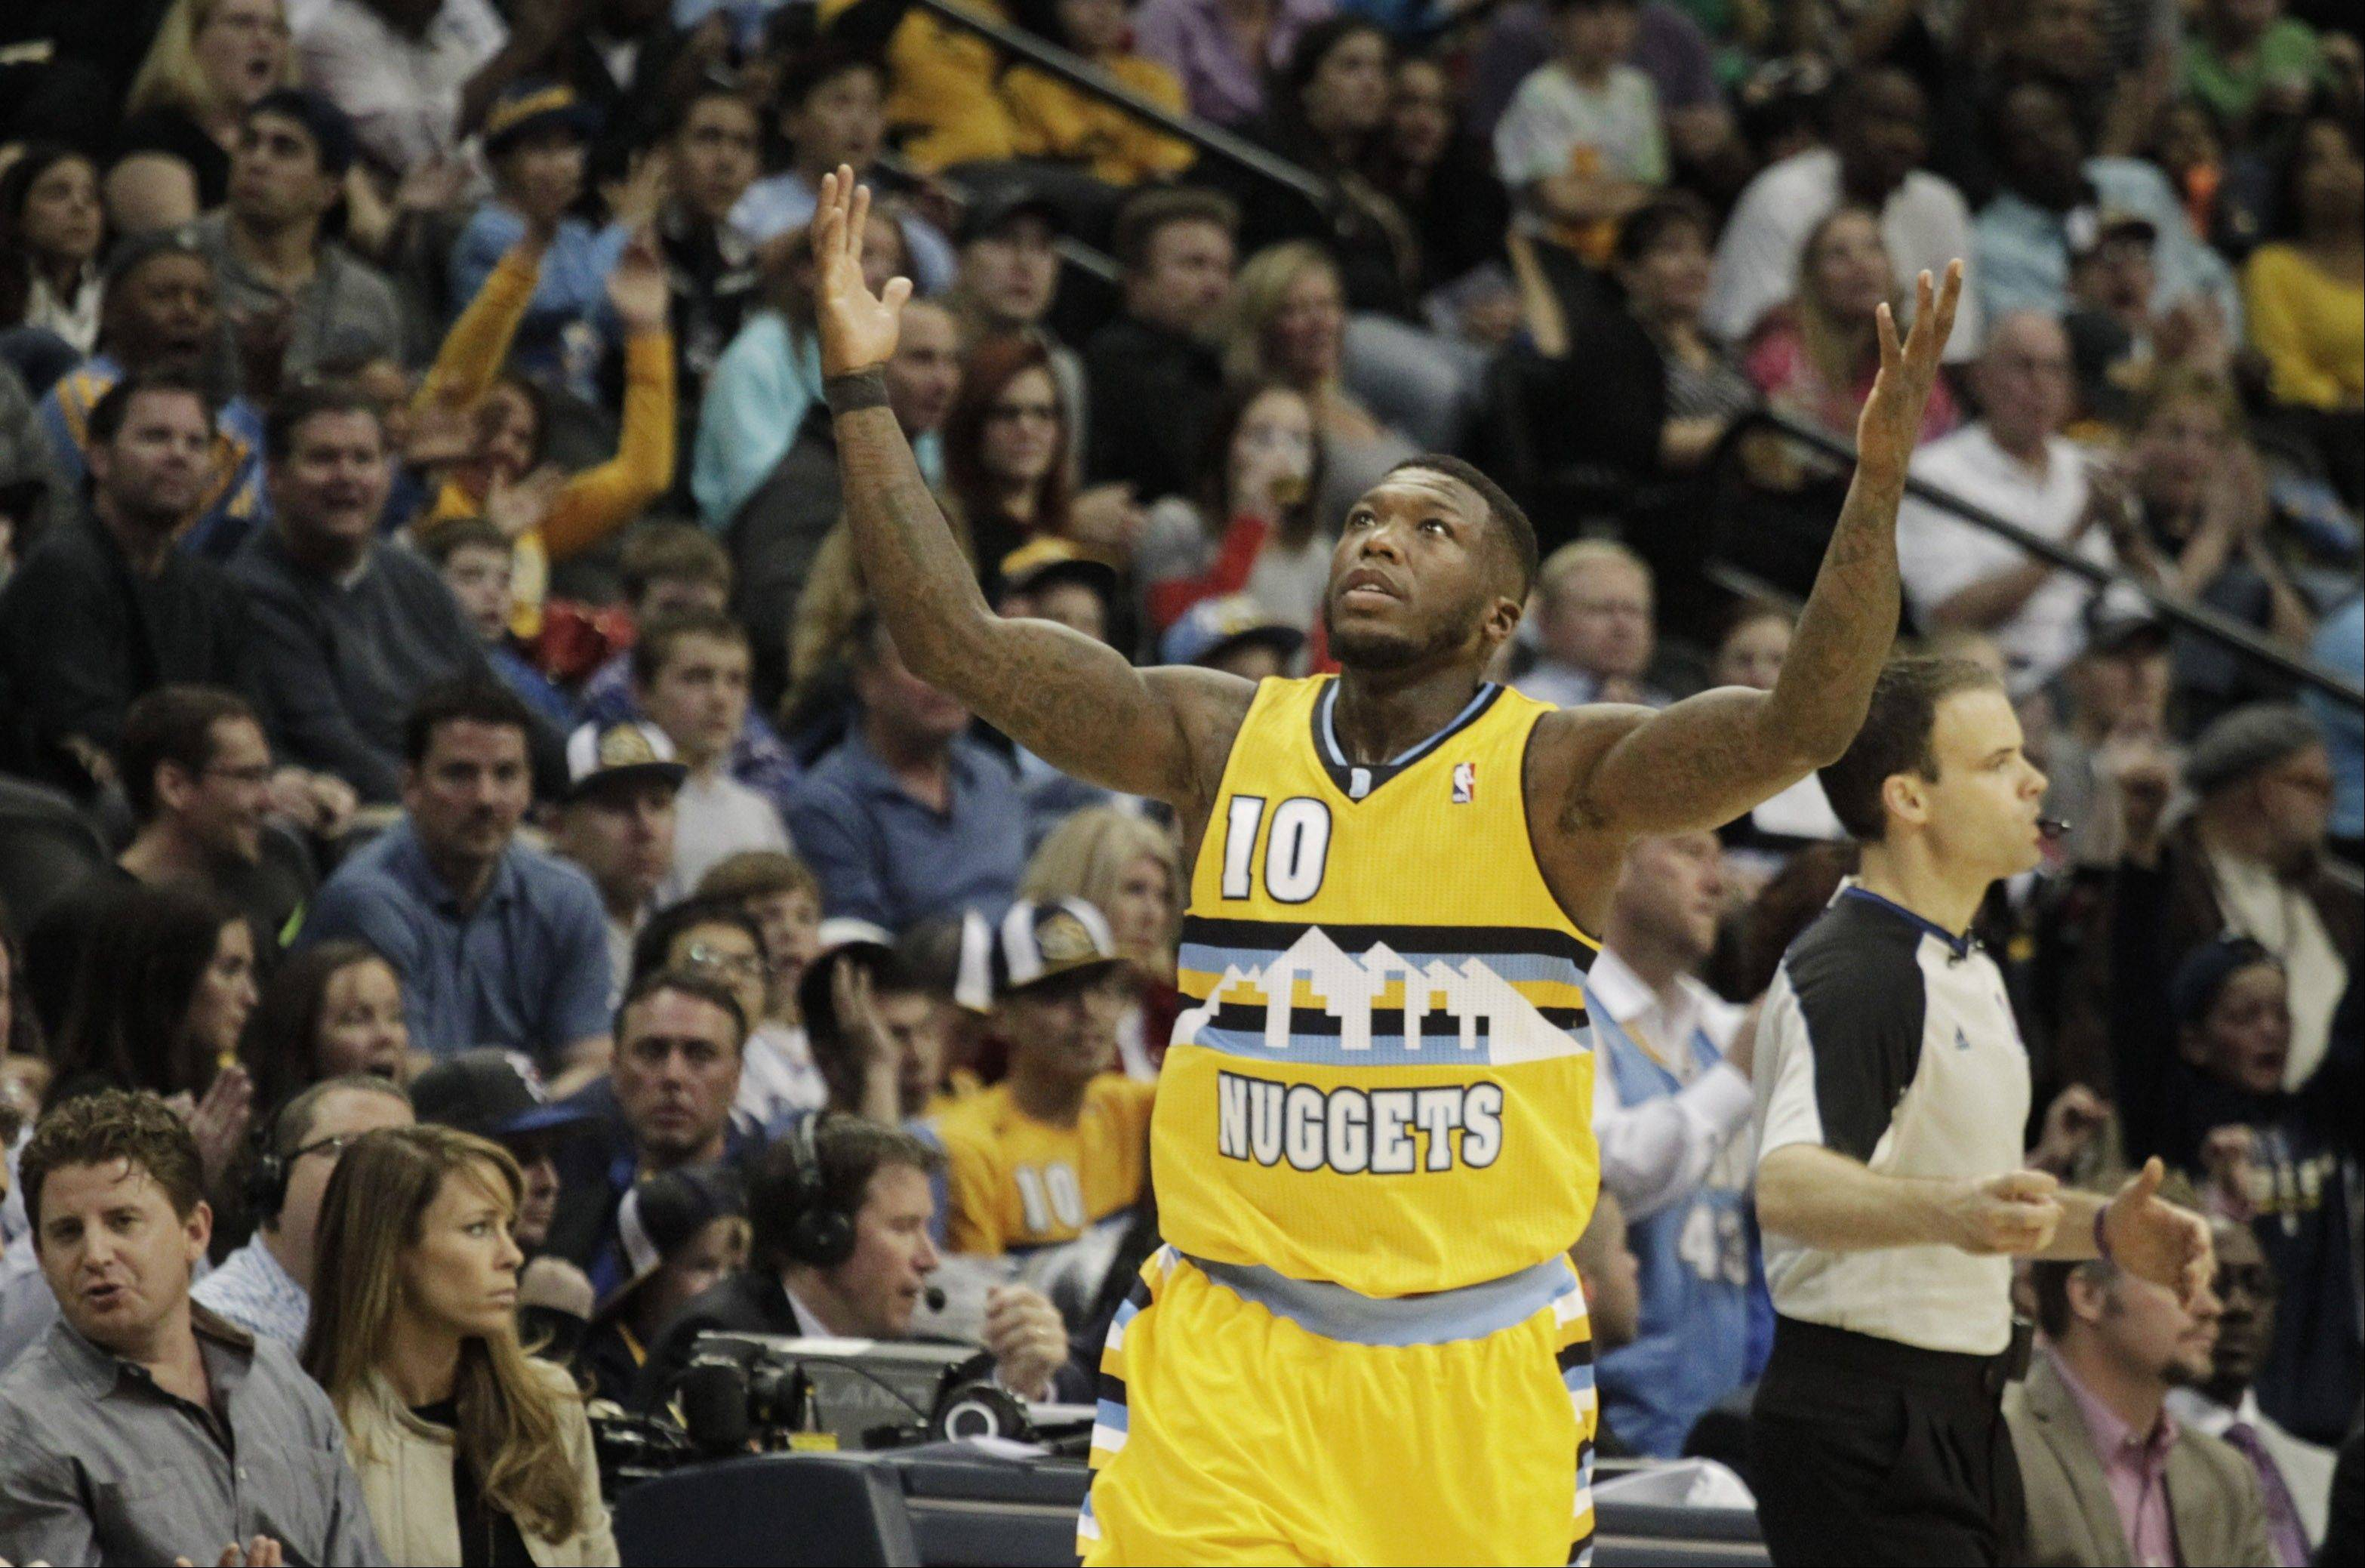 @Casption credit:Associated Press Playing just 17 minutes per game, point guard Nate Robinson is giving Denver's offense a lift off the bench and averaging about 9 points per game.